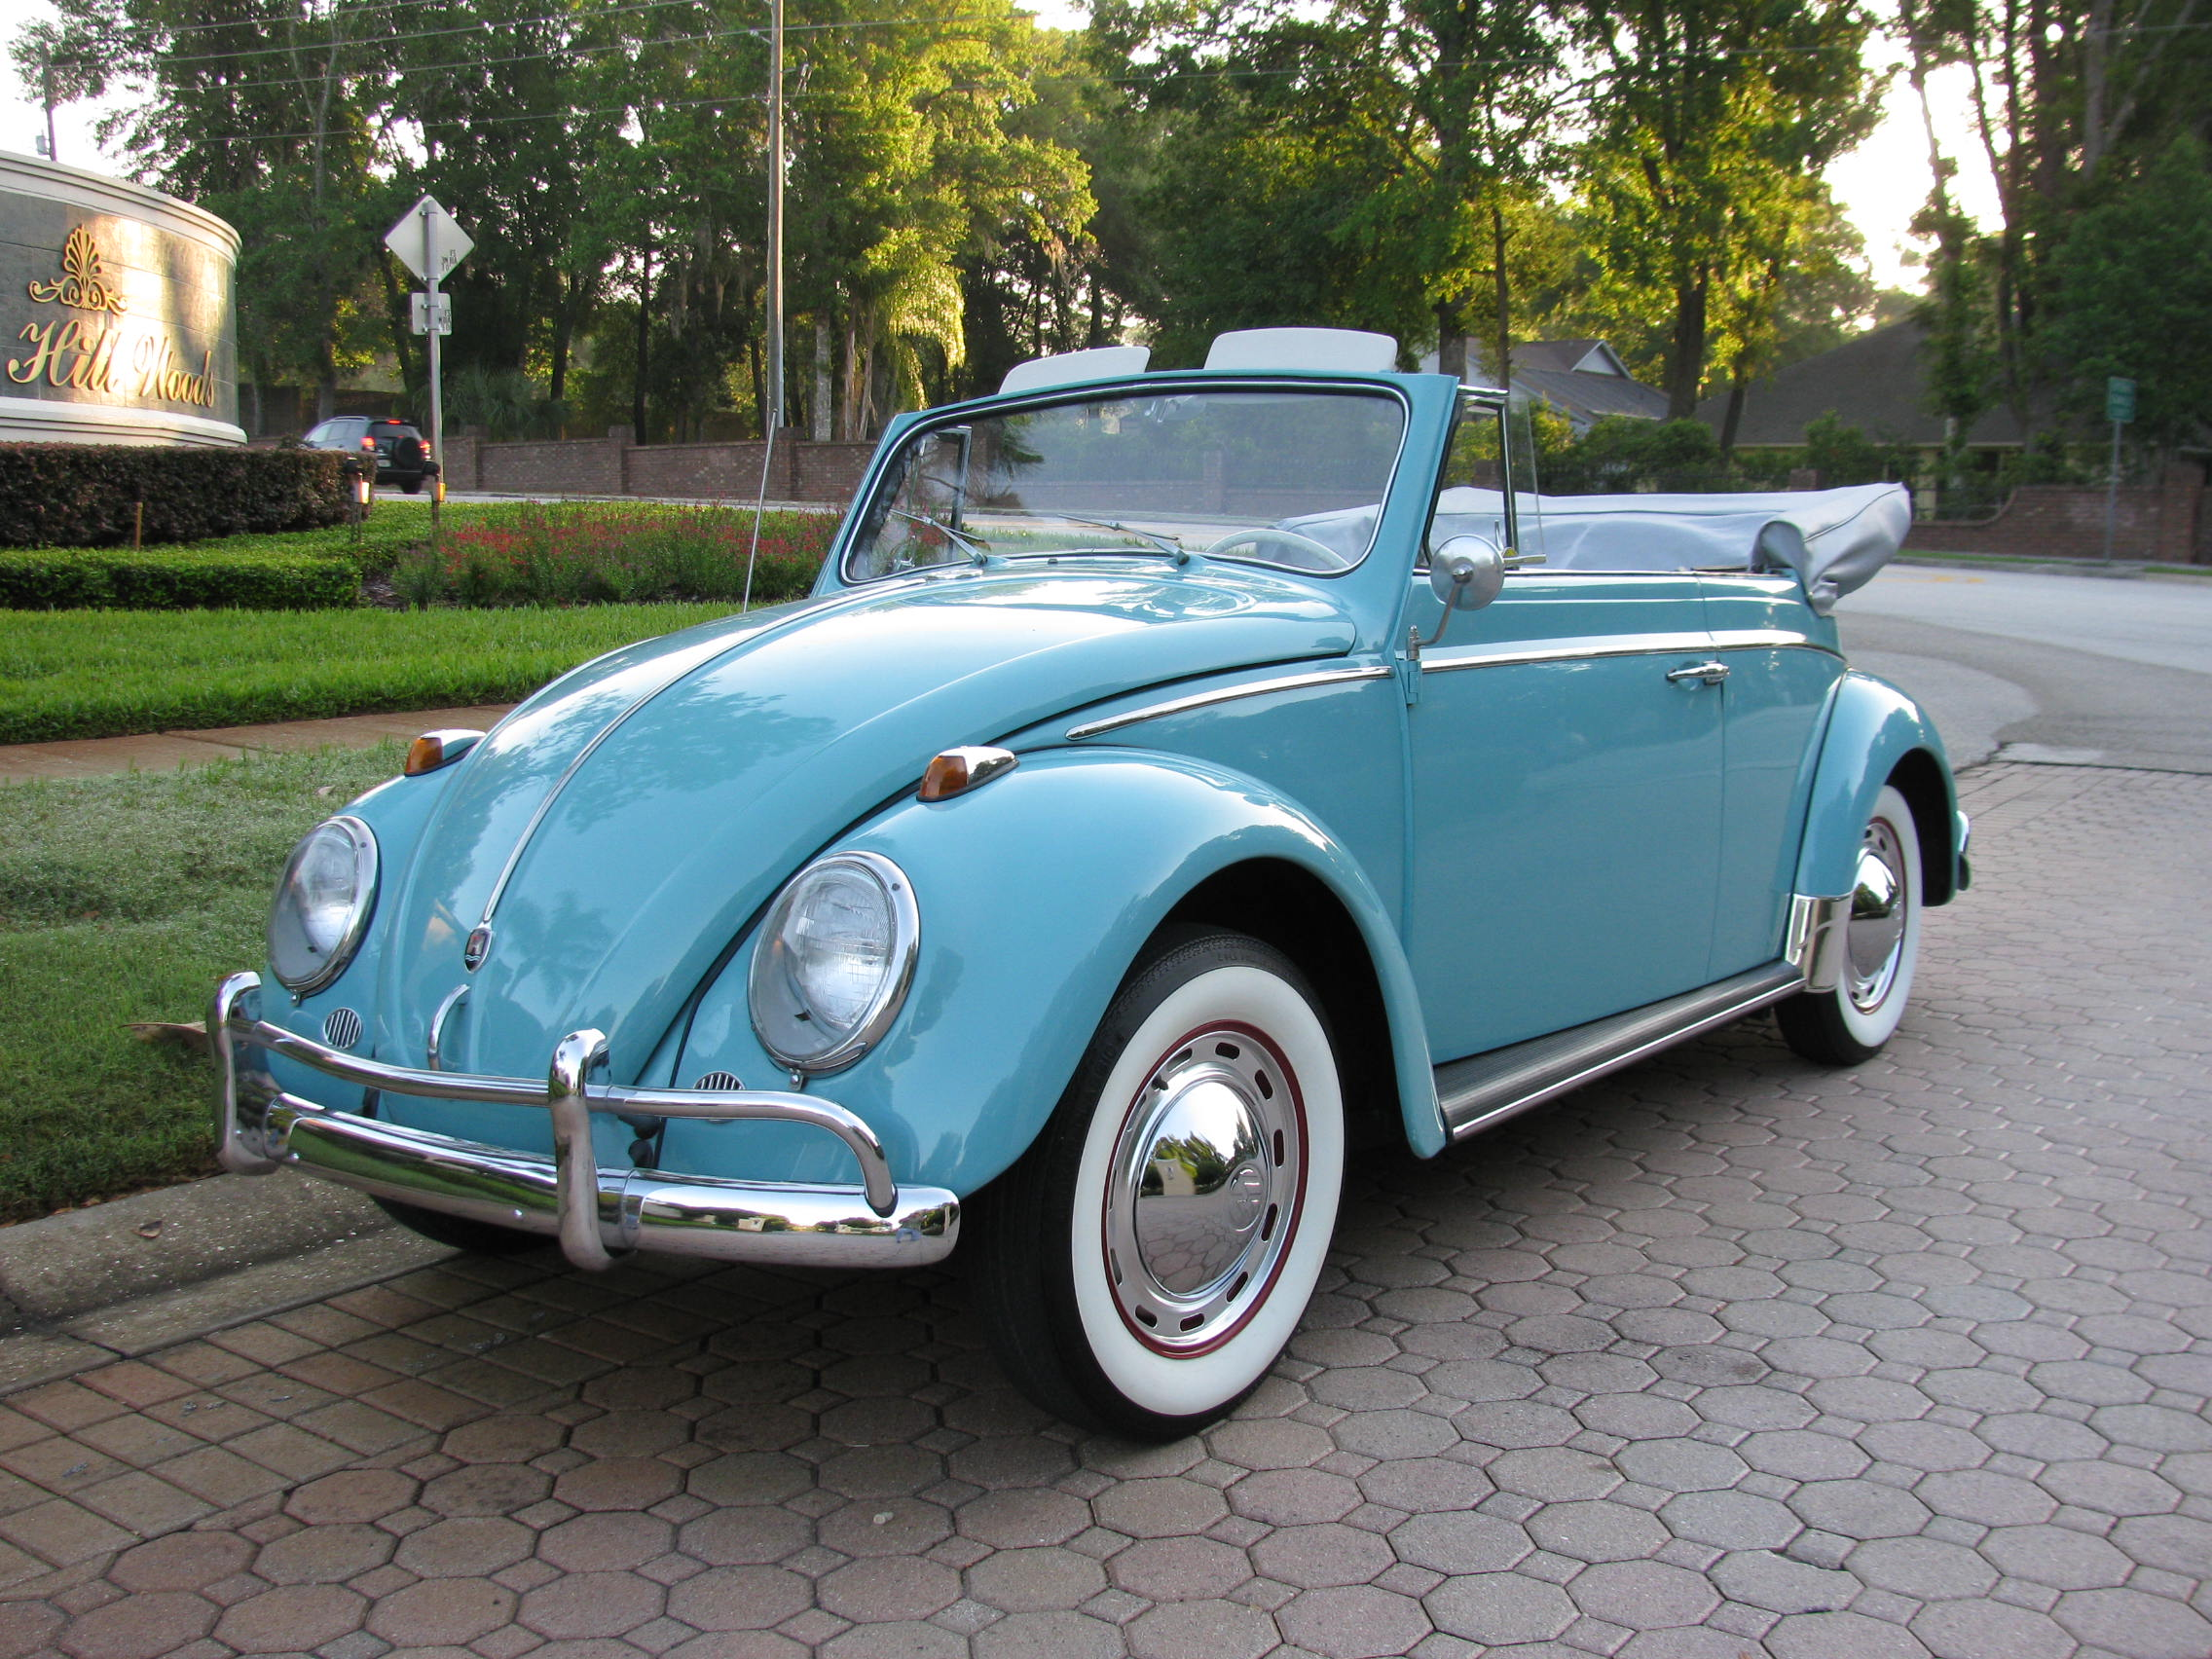 on cheap history john vw art model pin stuff bugs pinterest volkswagen beetles buy by beetle tanner style to